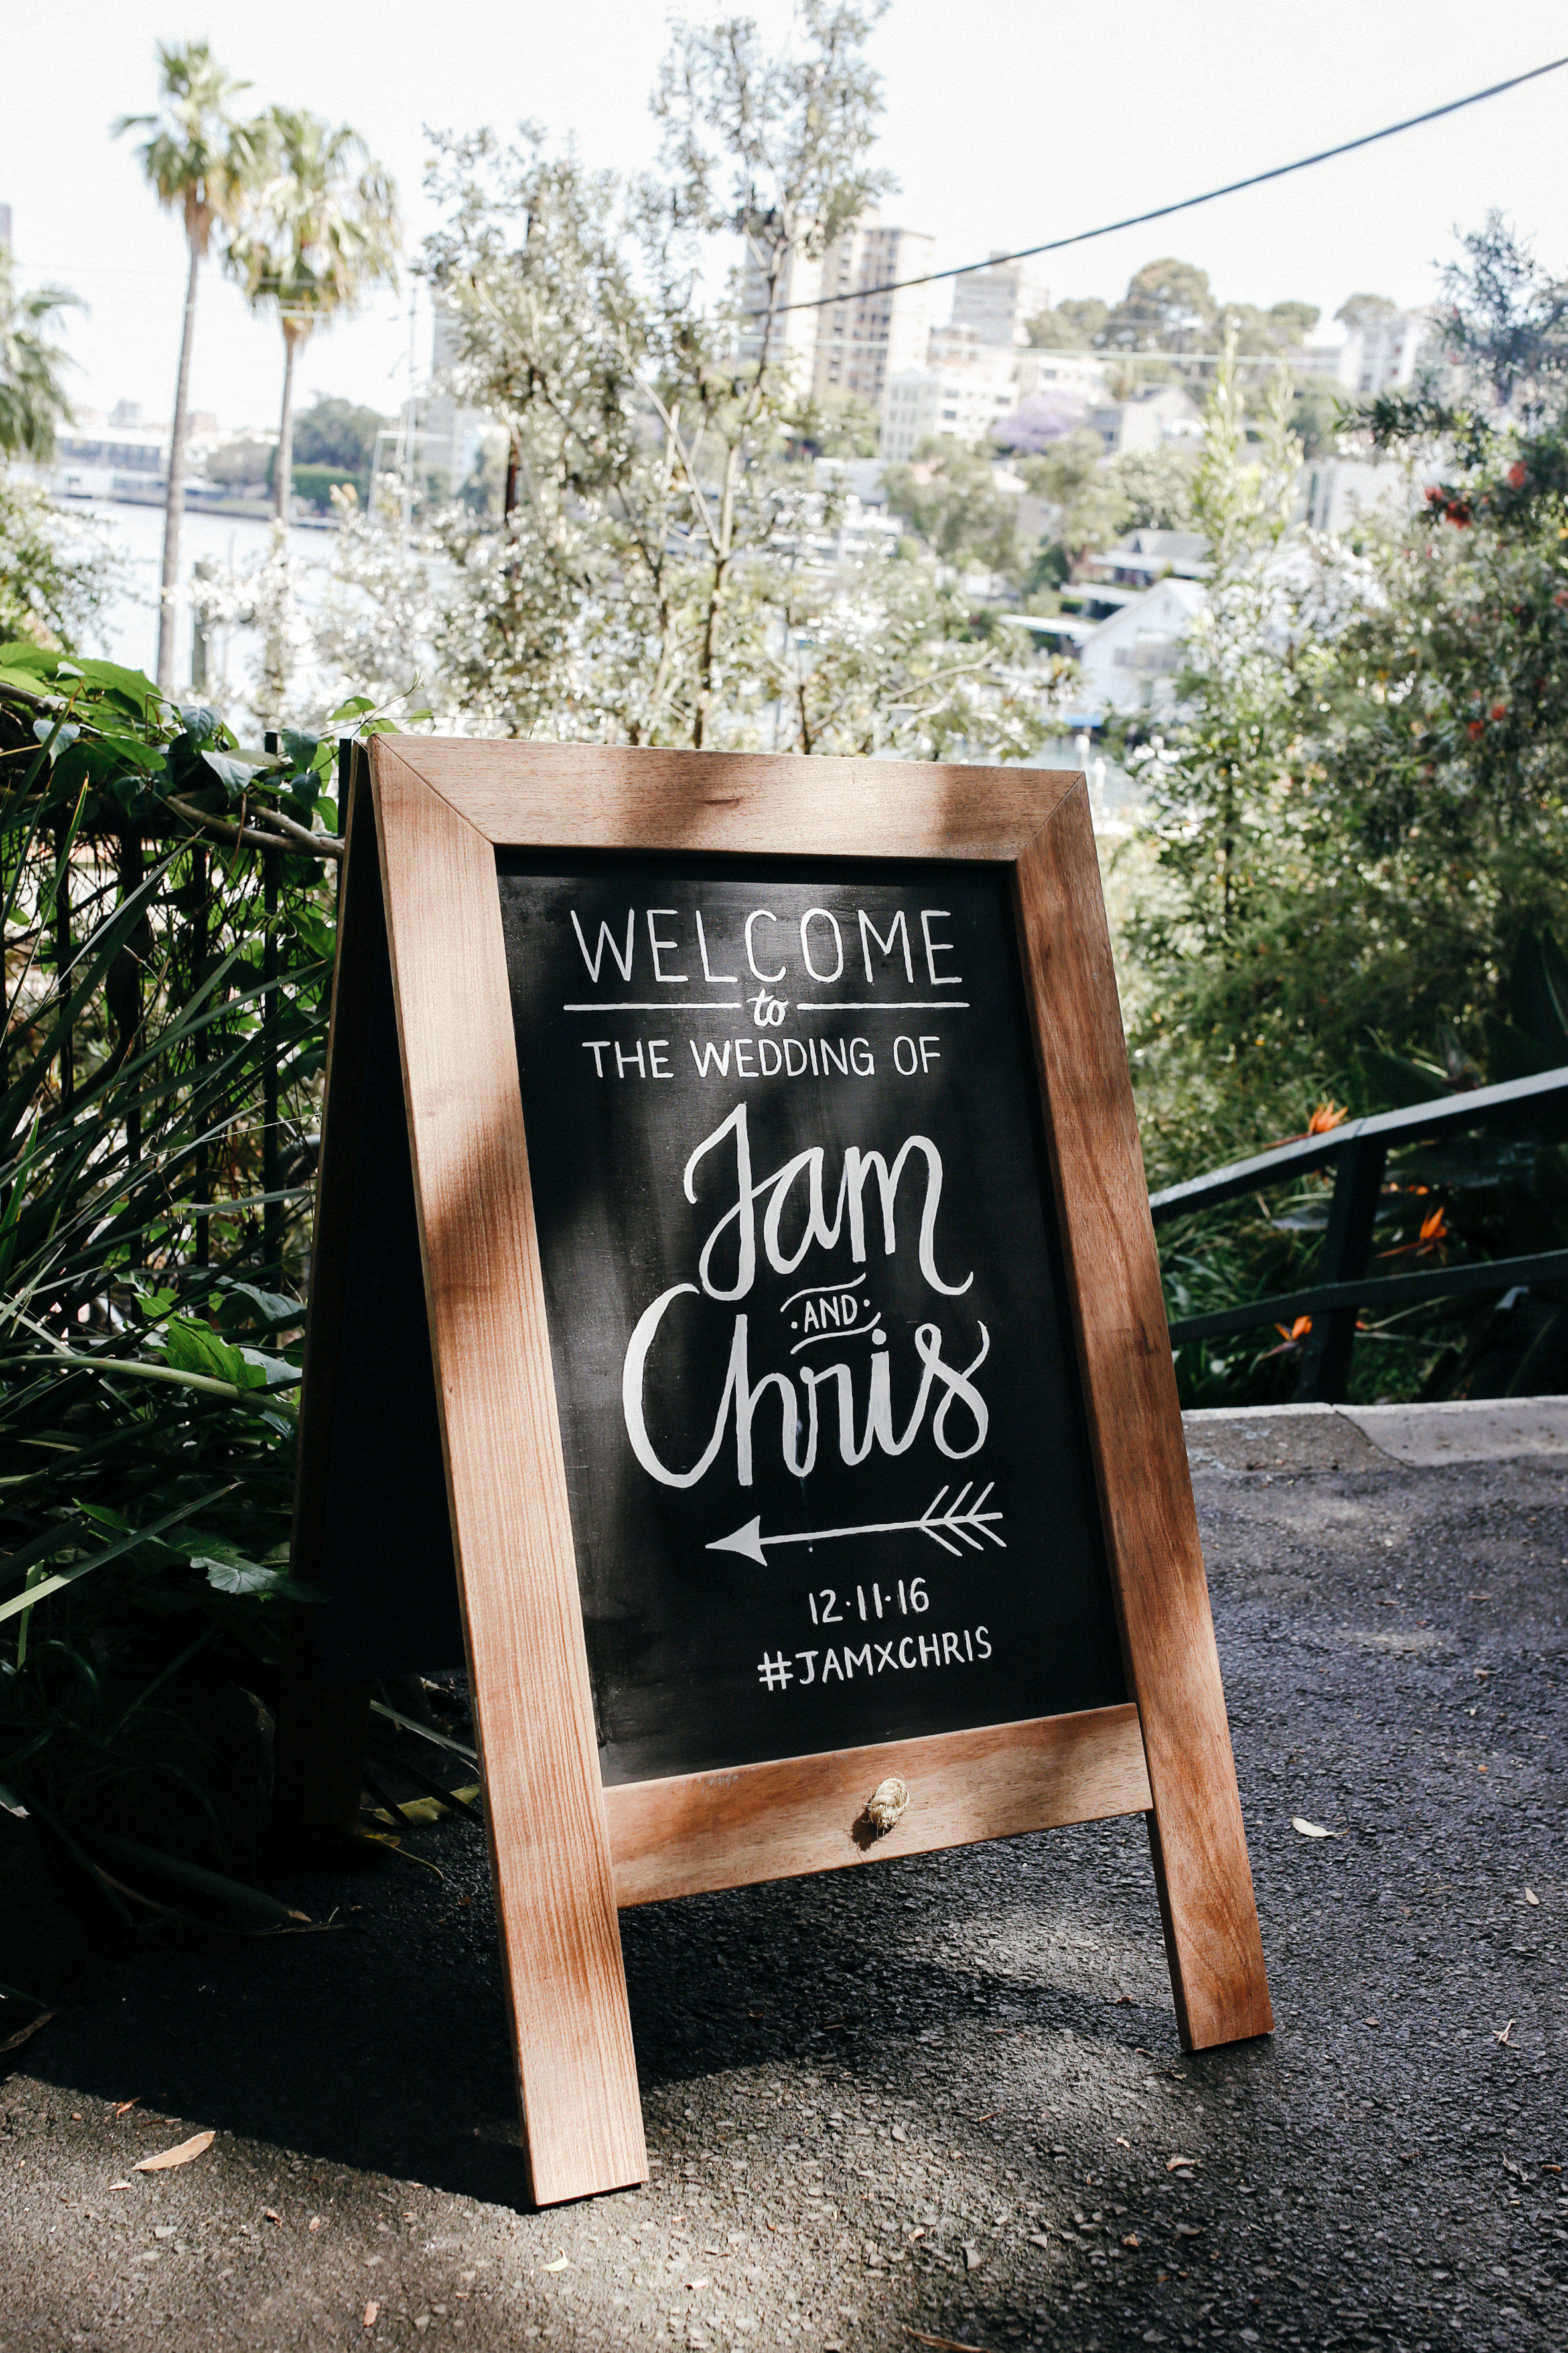 Jam_Chris_Wedding_PRINT-288.jpg